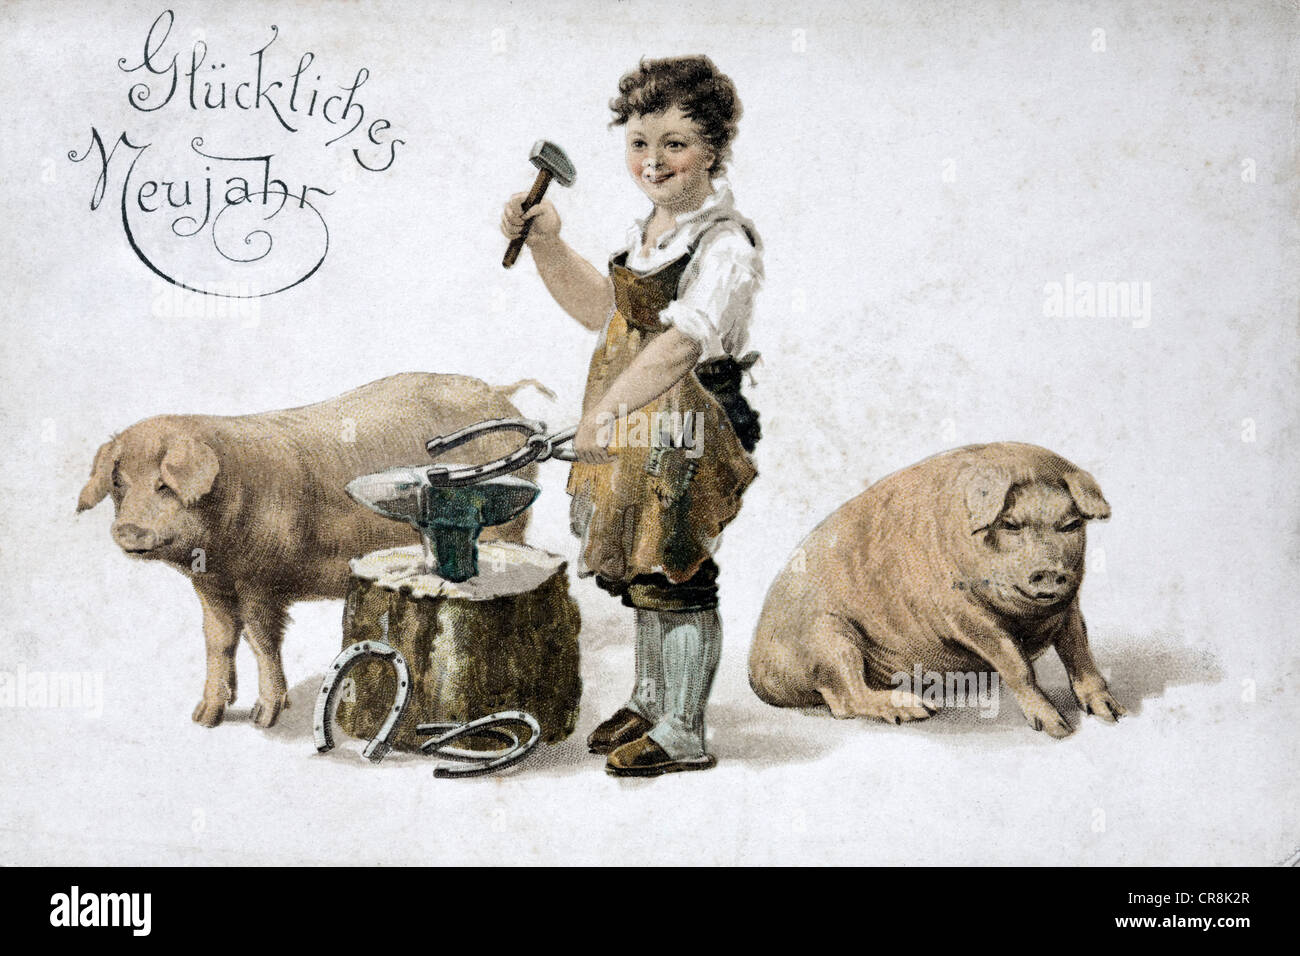 Historic New Year's card with symbols of good fortune, boy forging horseshoes next to pigs, around 1900 - Stock Image